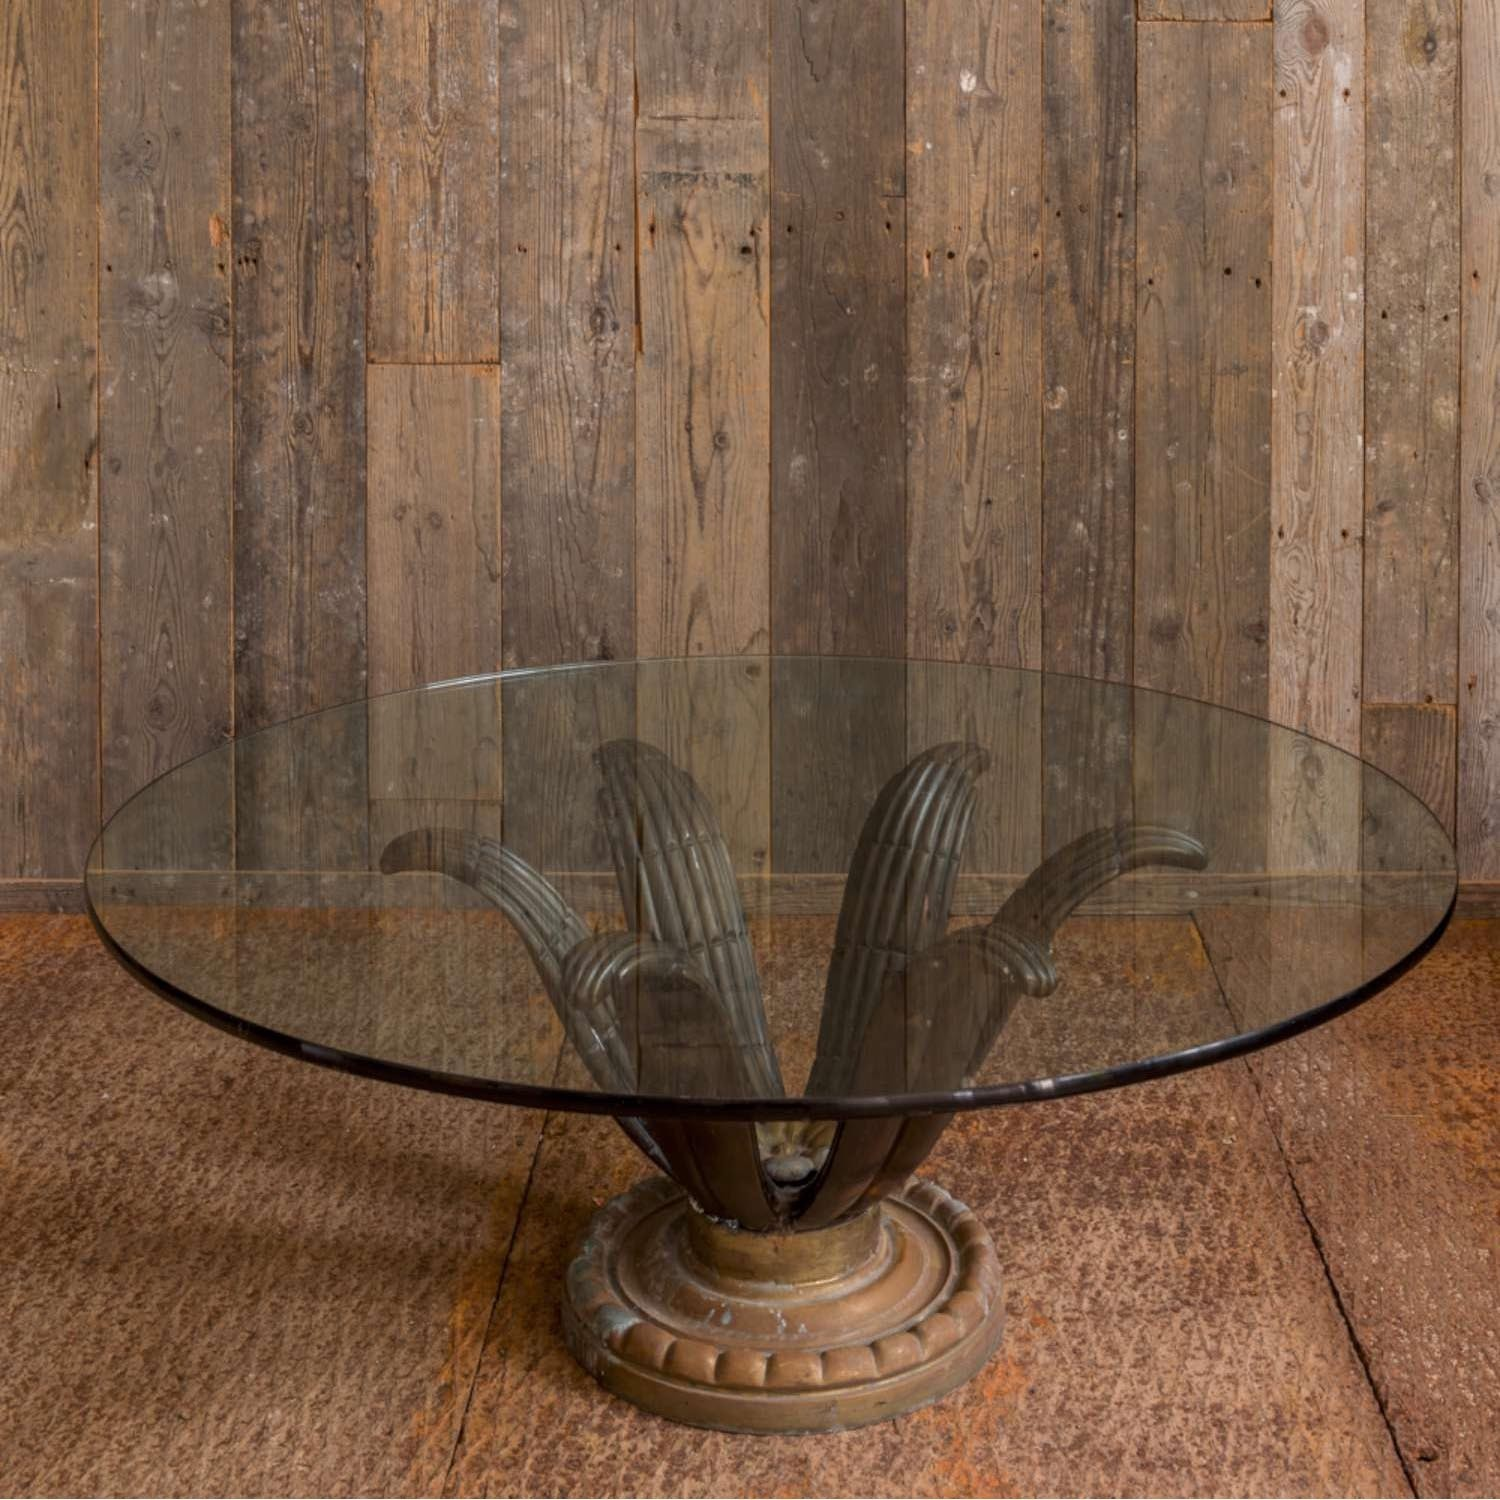 Vintage coffee table with bronze base